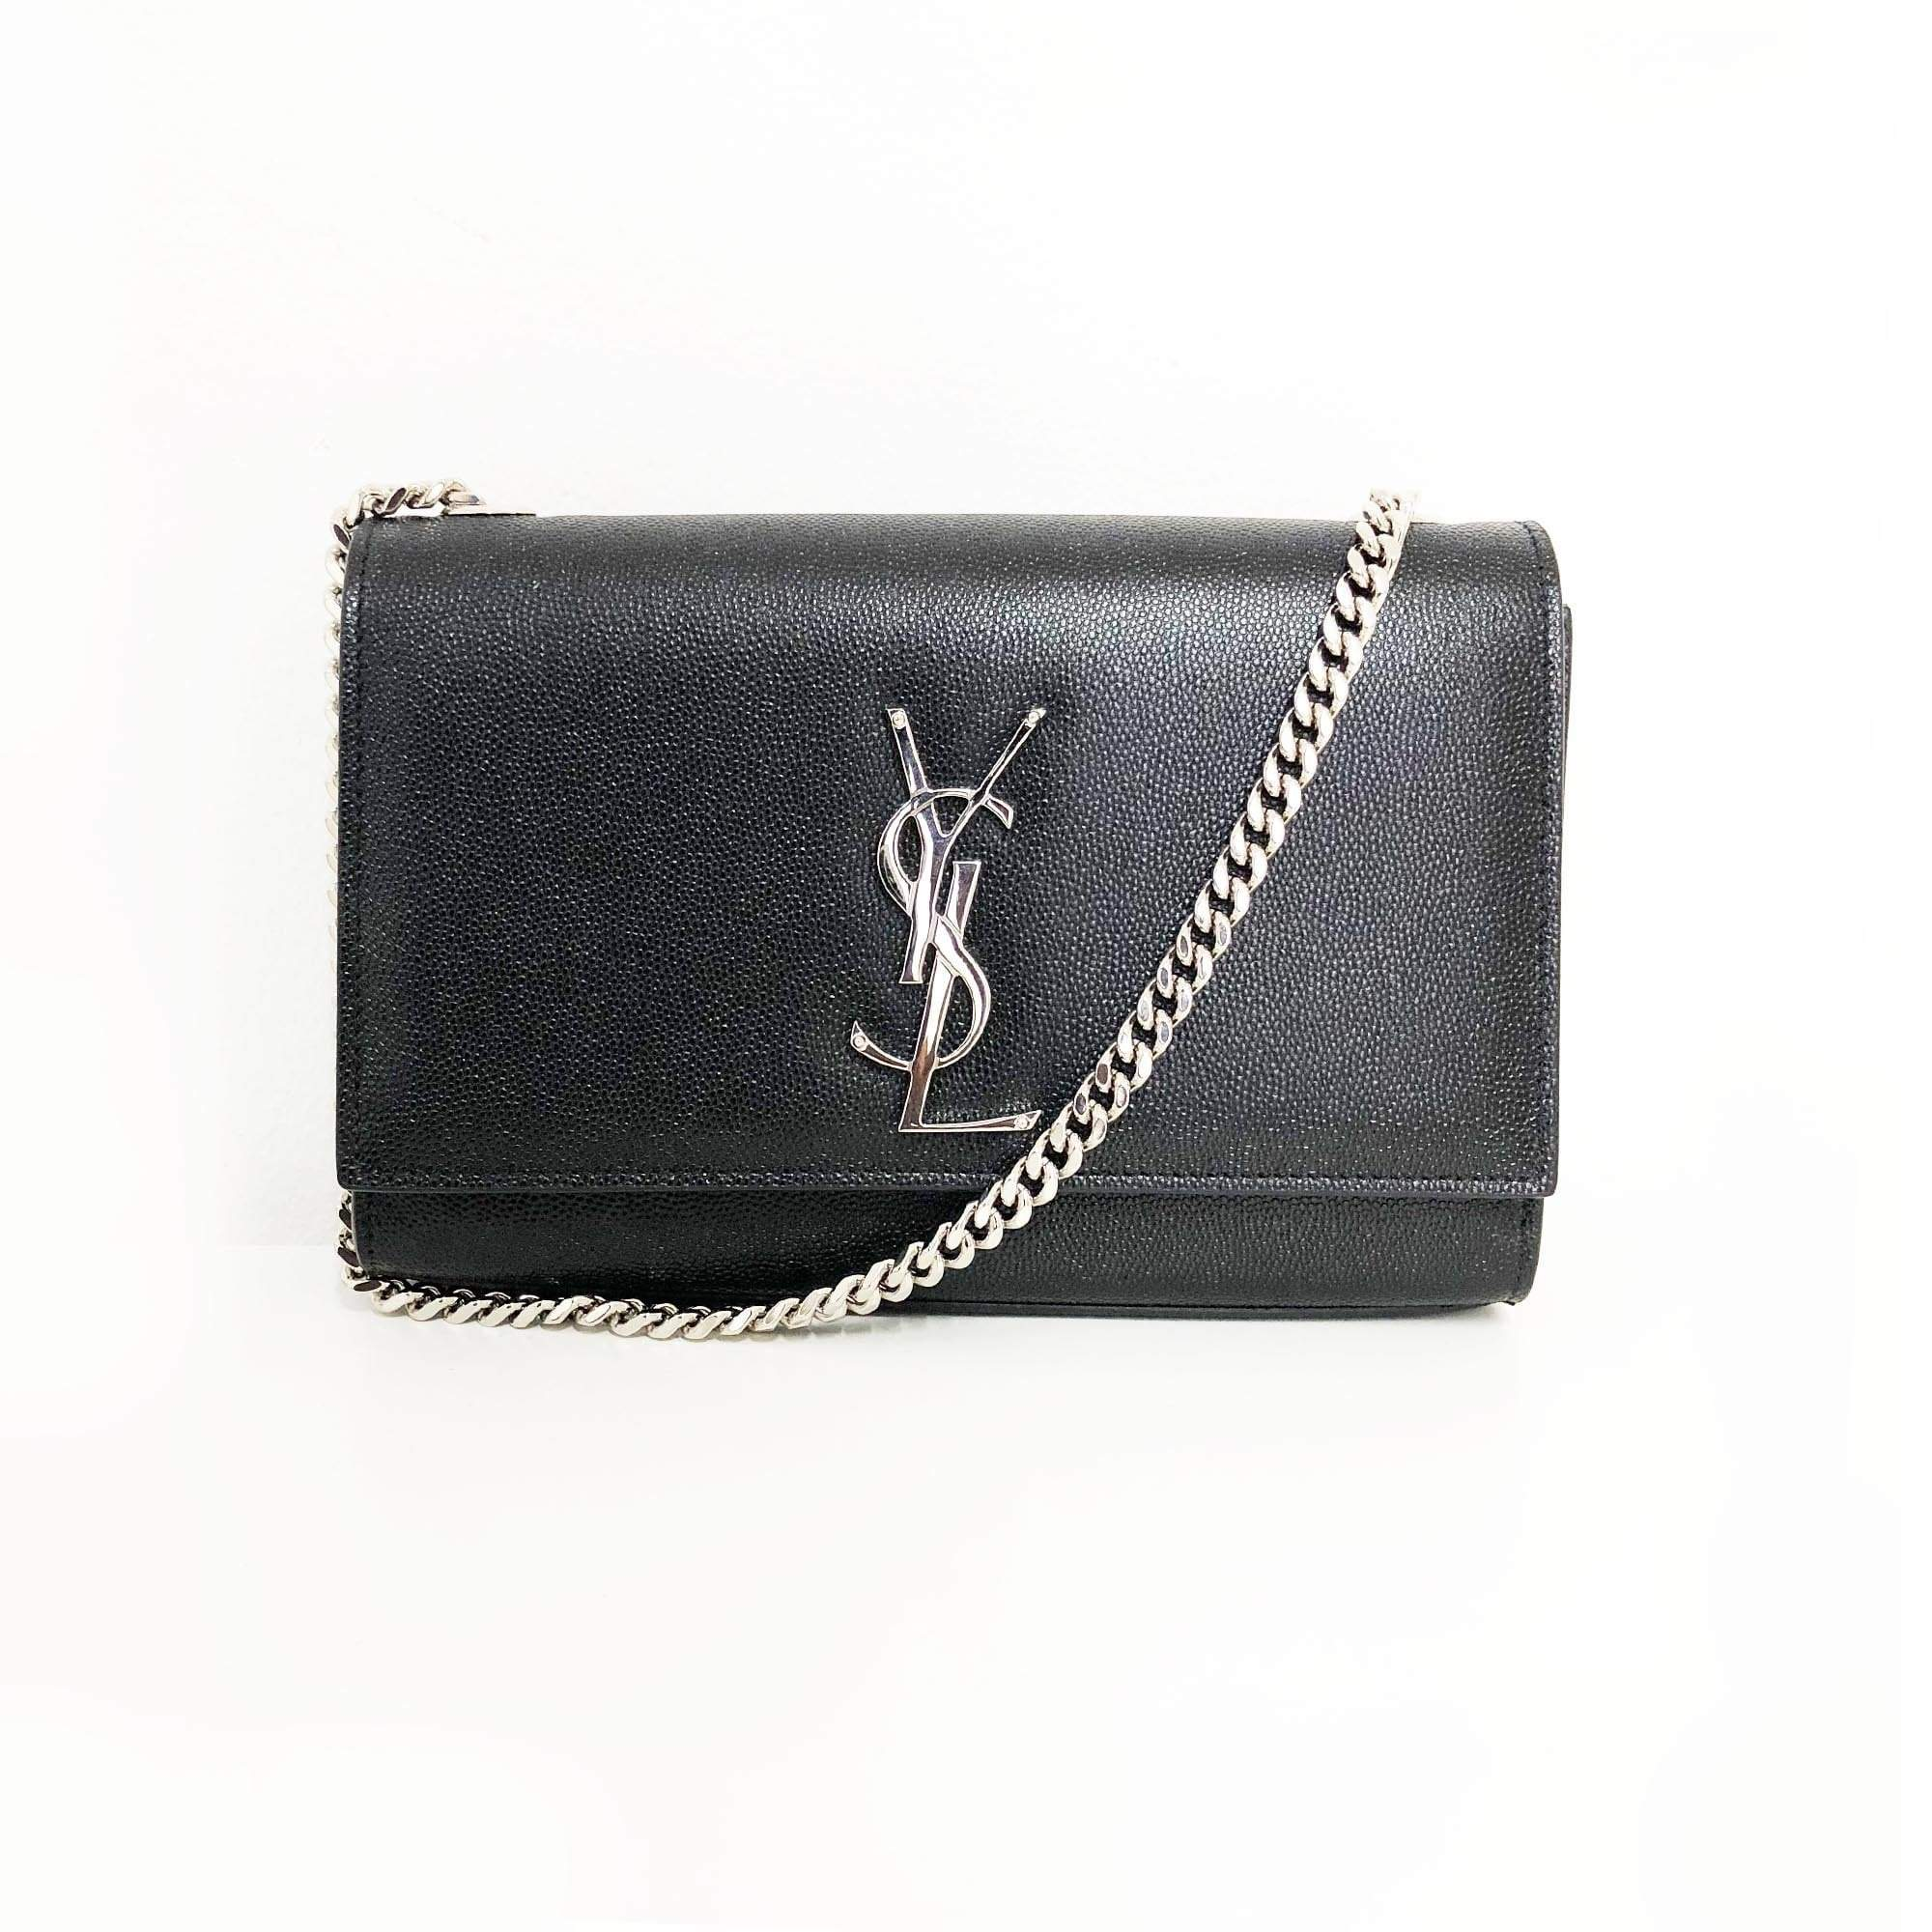 Yves Saint Laurent  Kate Small Monogram shoulder bag Silver Hardware